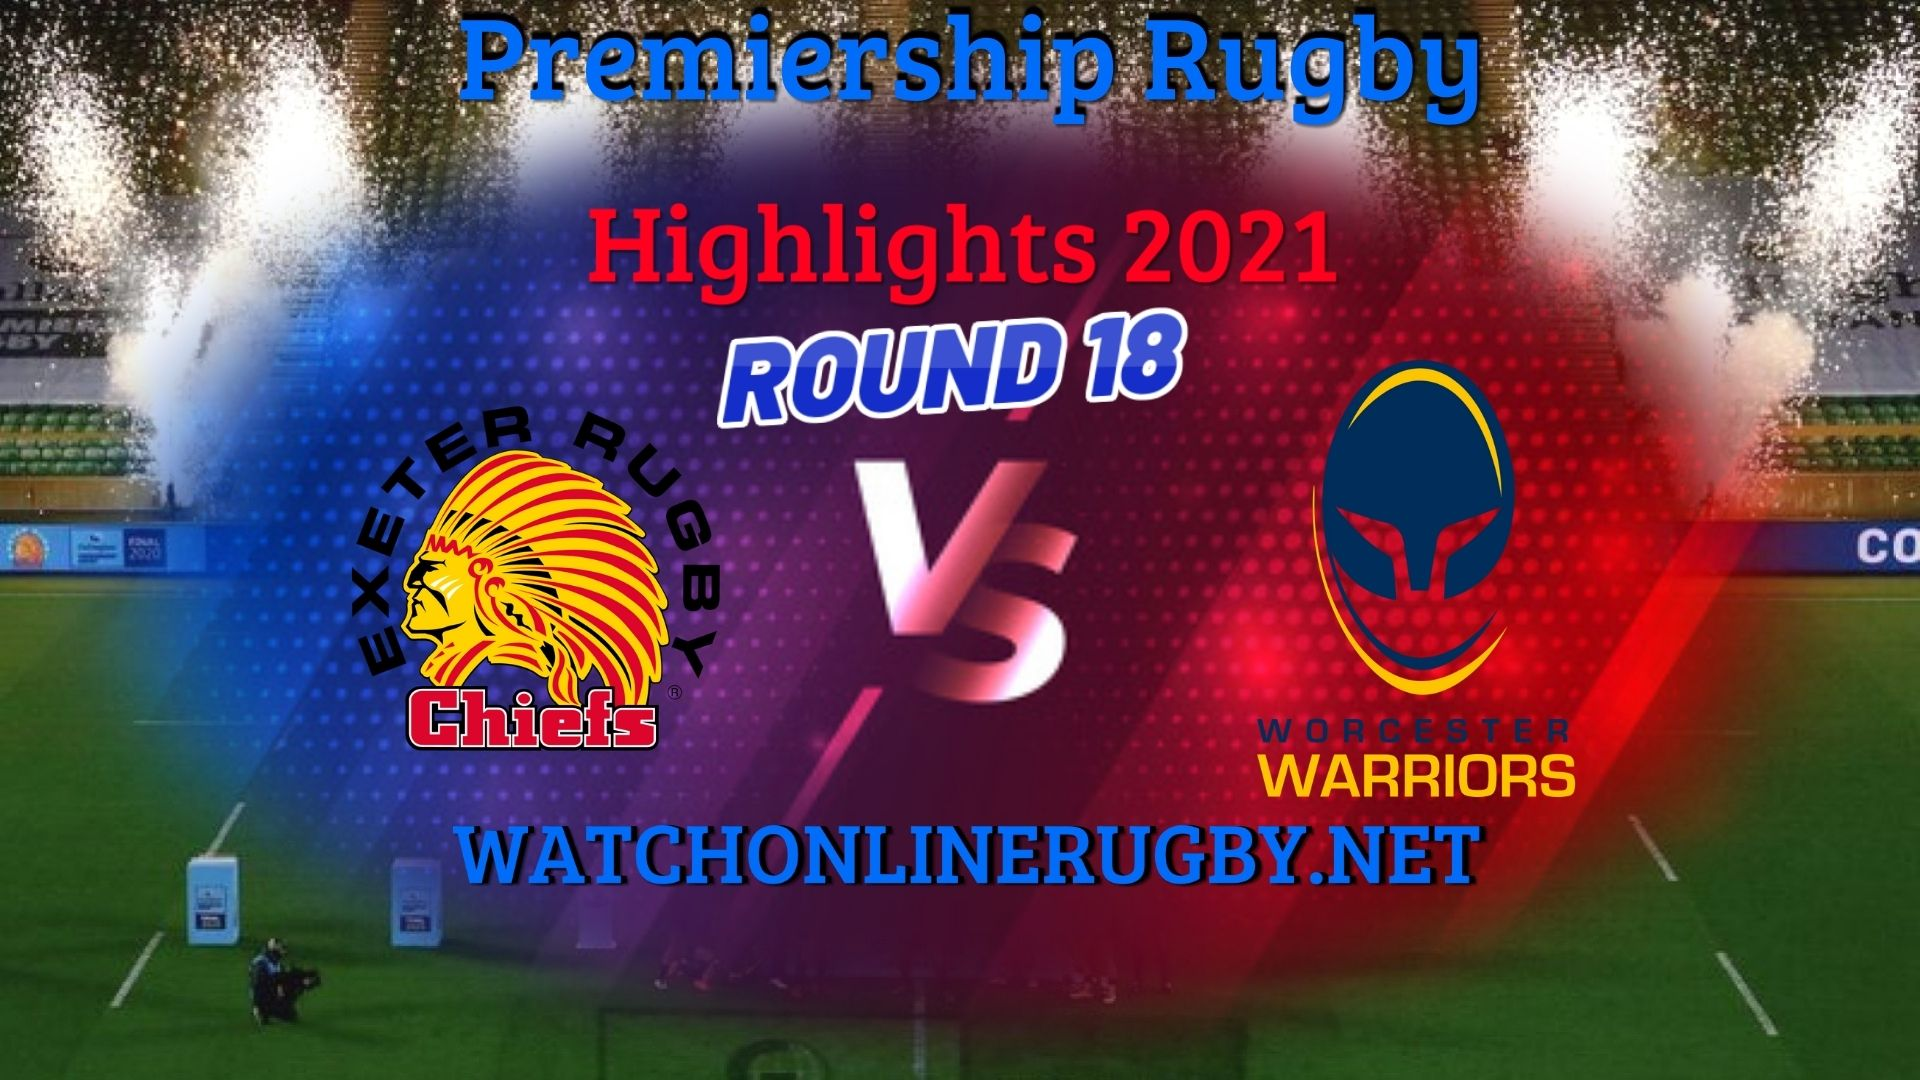 Exeter Chiefs Vs Worcester Warriors Premiership Rugby 2021 RD 18